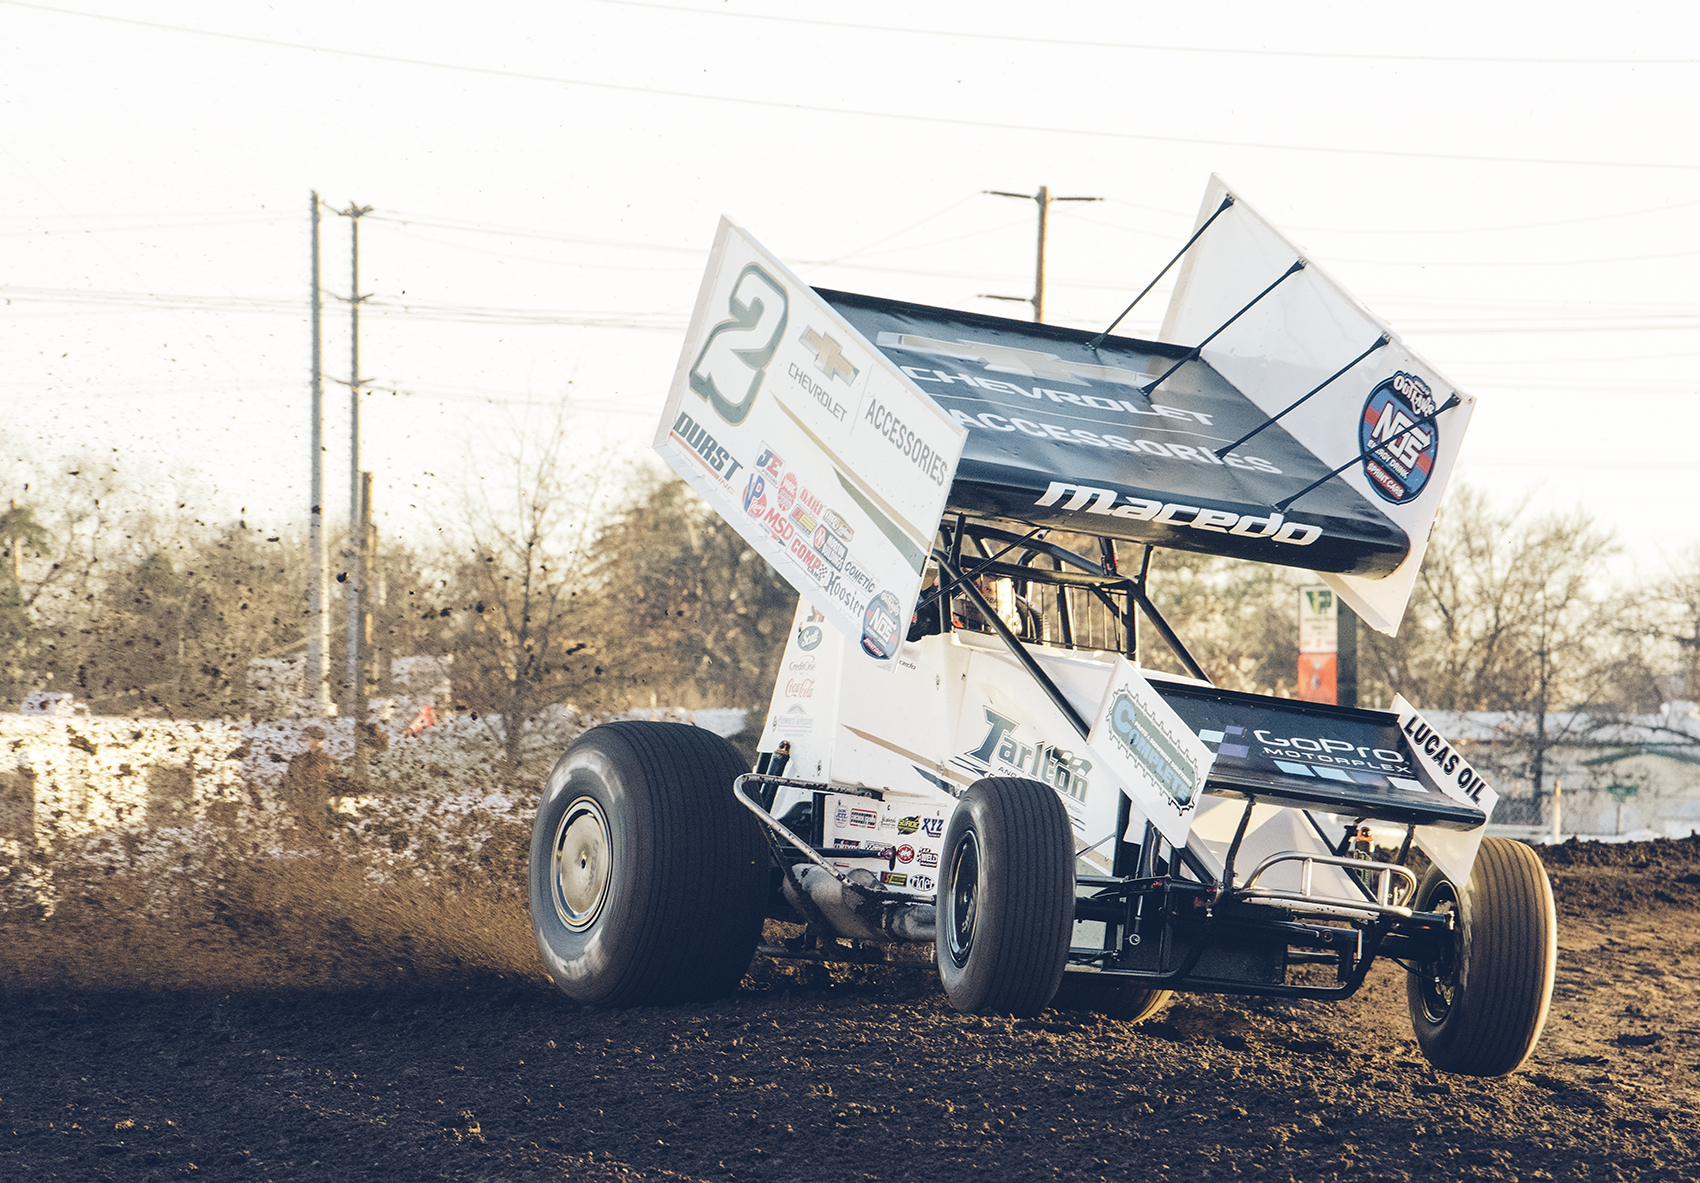 Macedo on the gas at Chico, 2019.